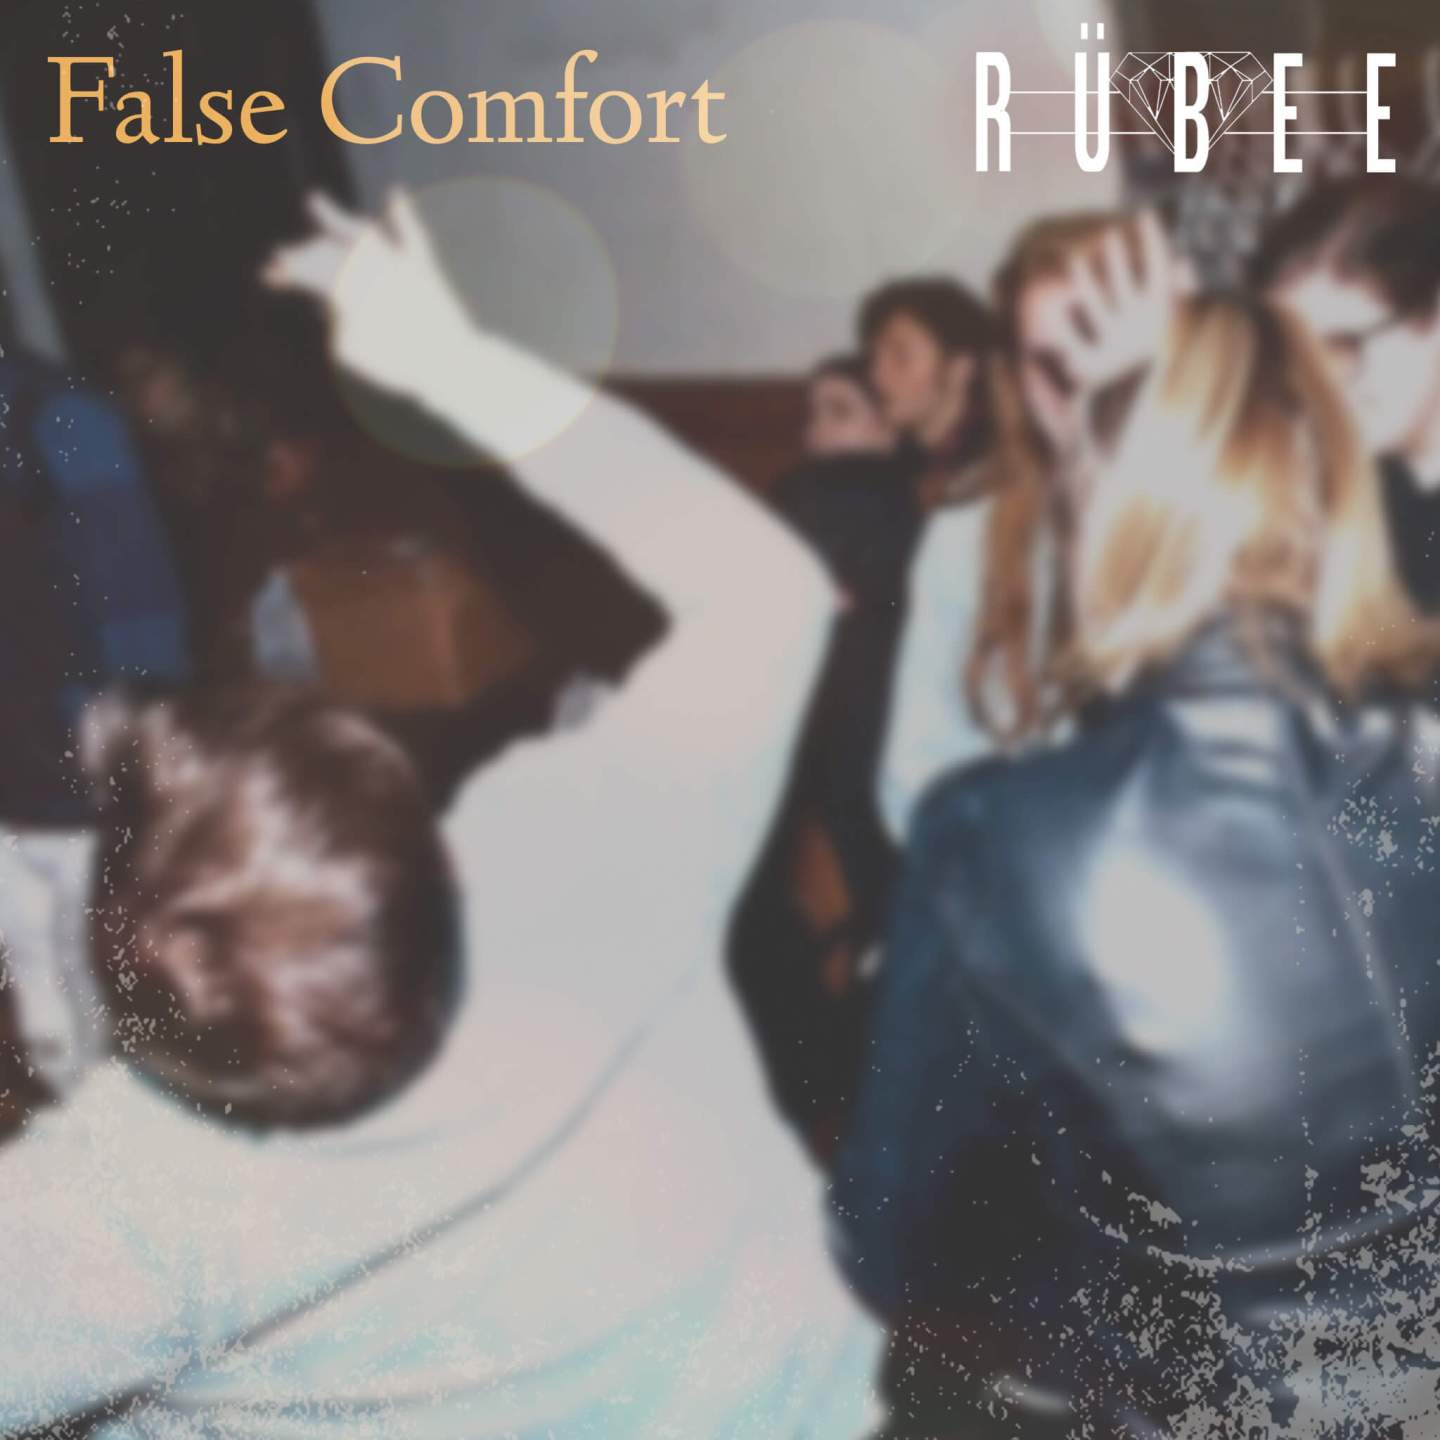 Rubee False Comfort